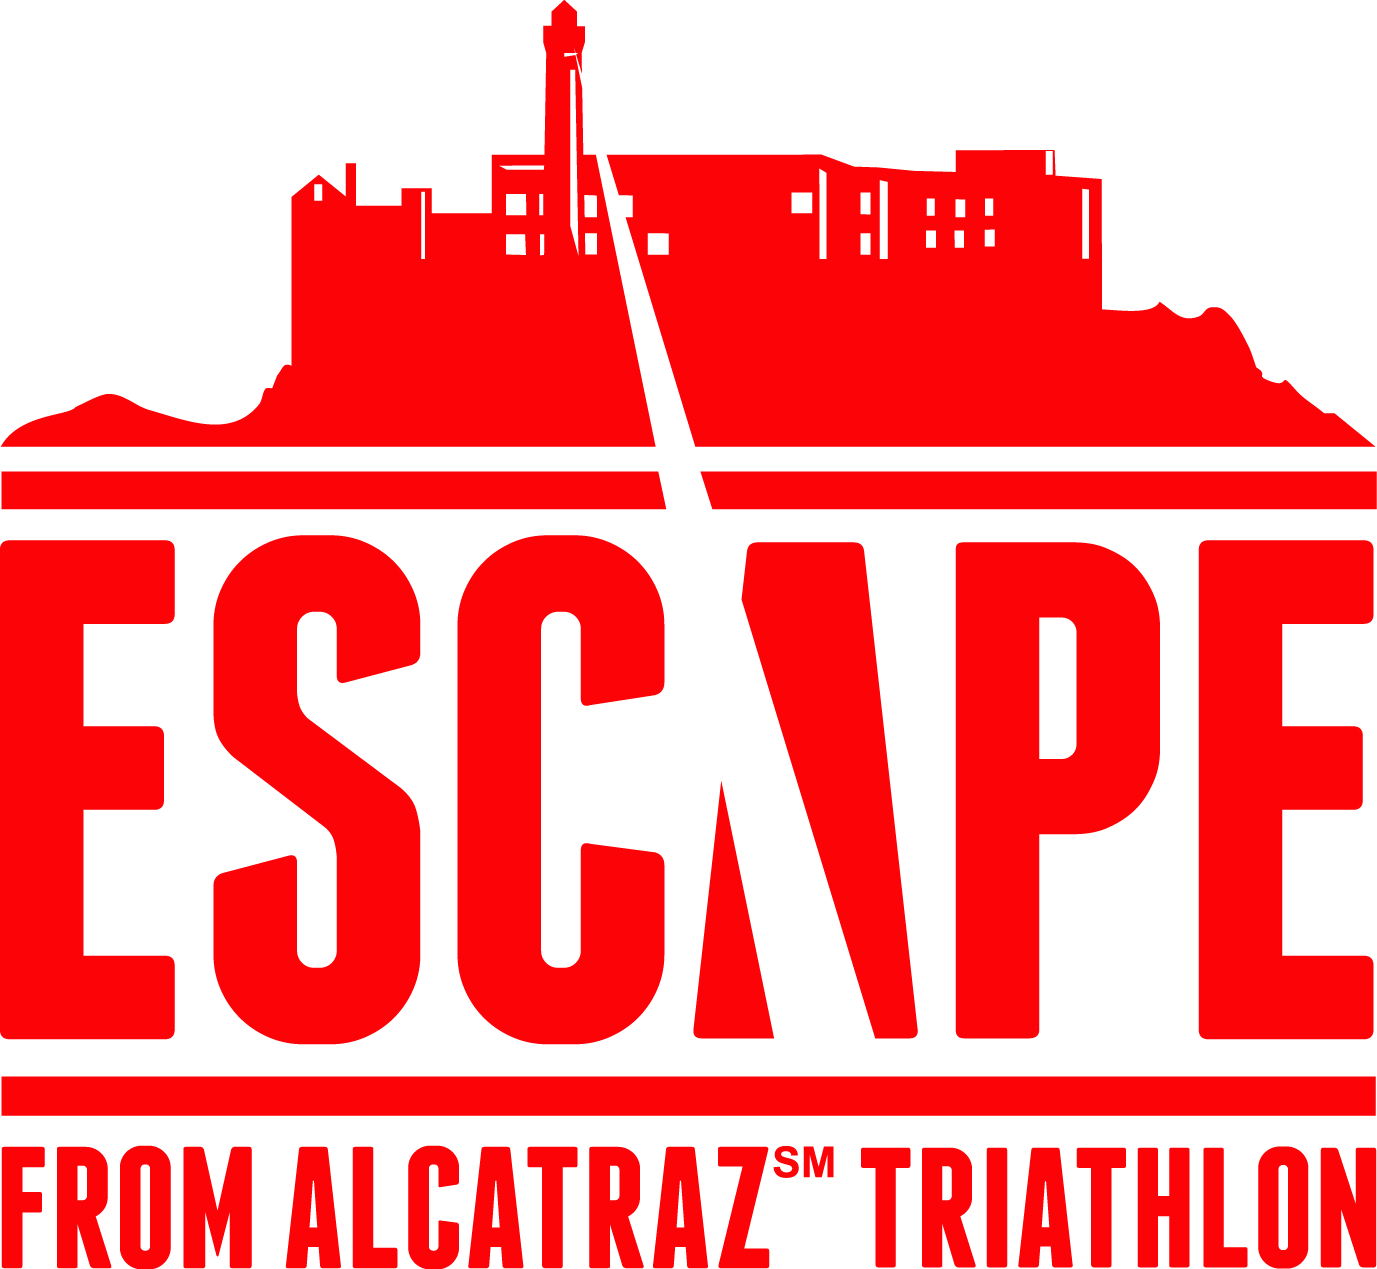 Escape From Alcatraz Triathlon 2012-2017